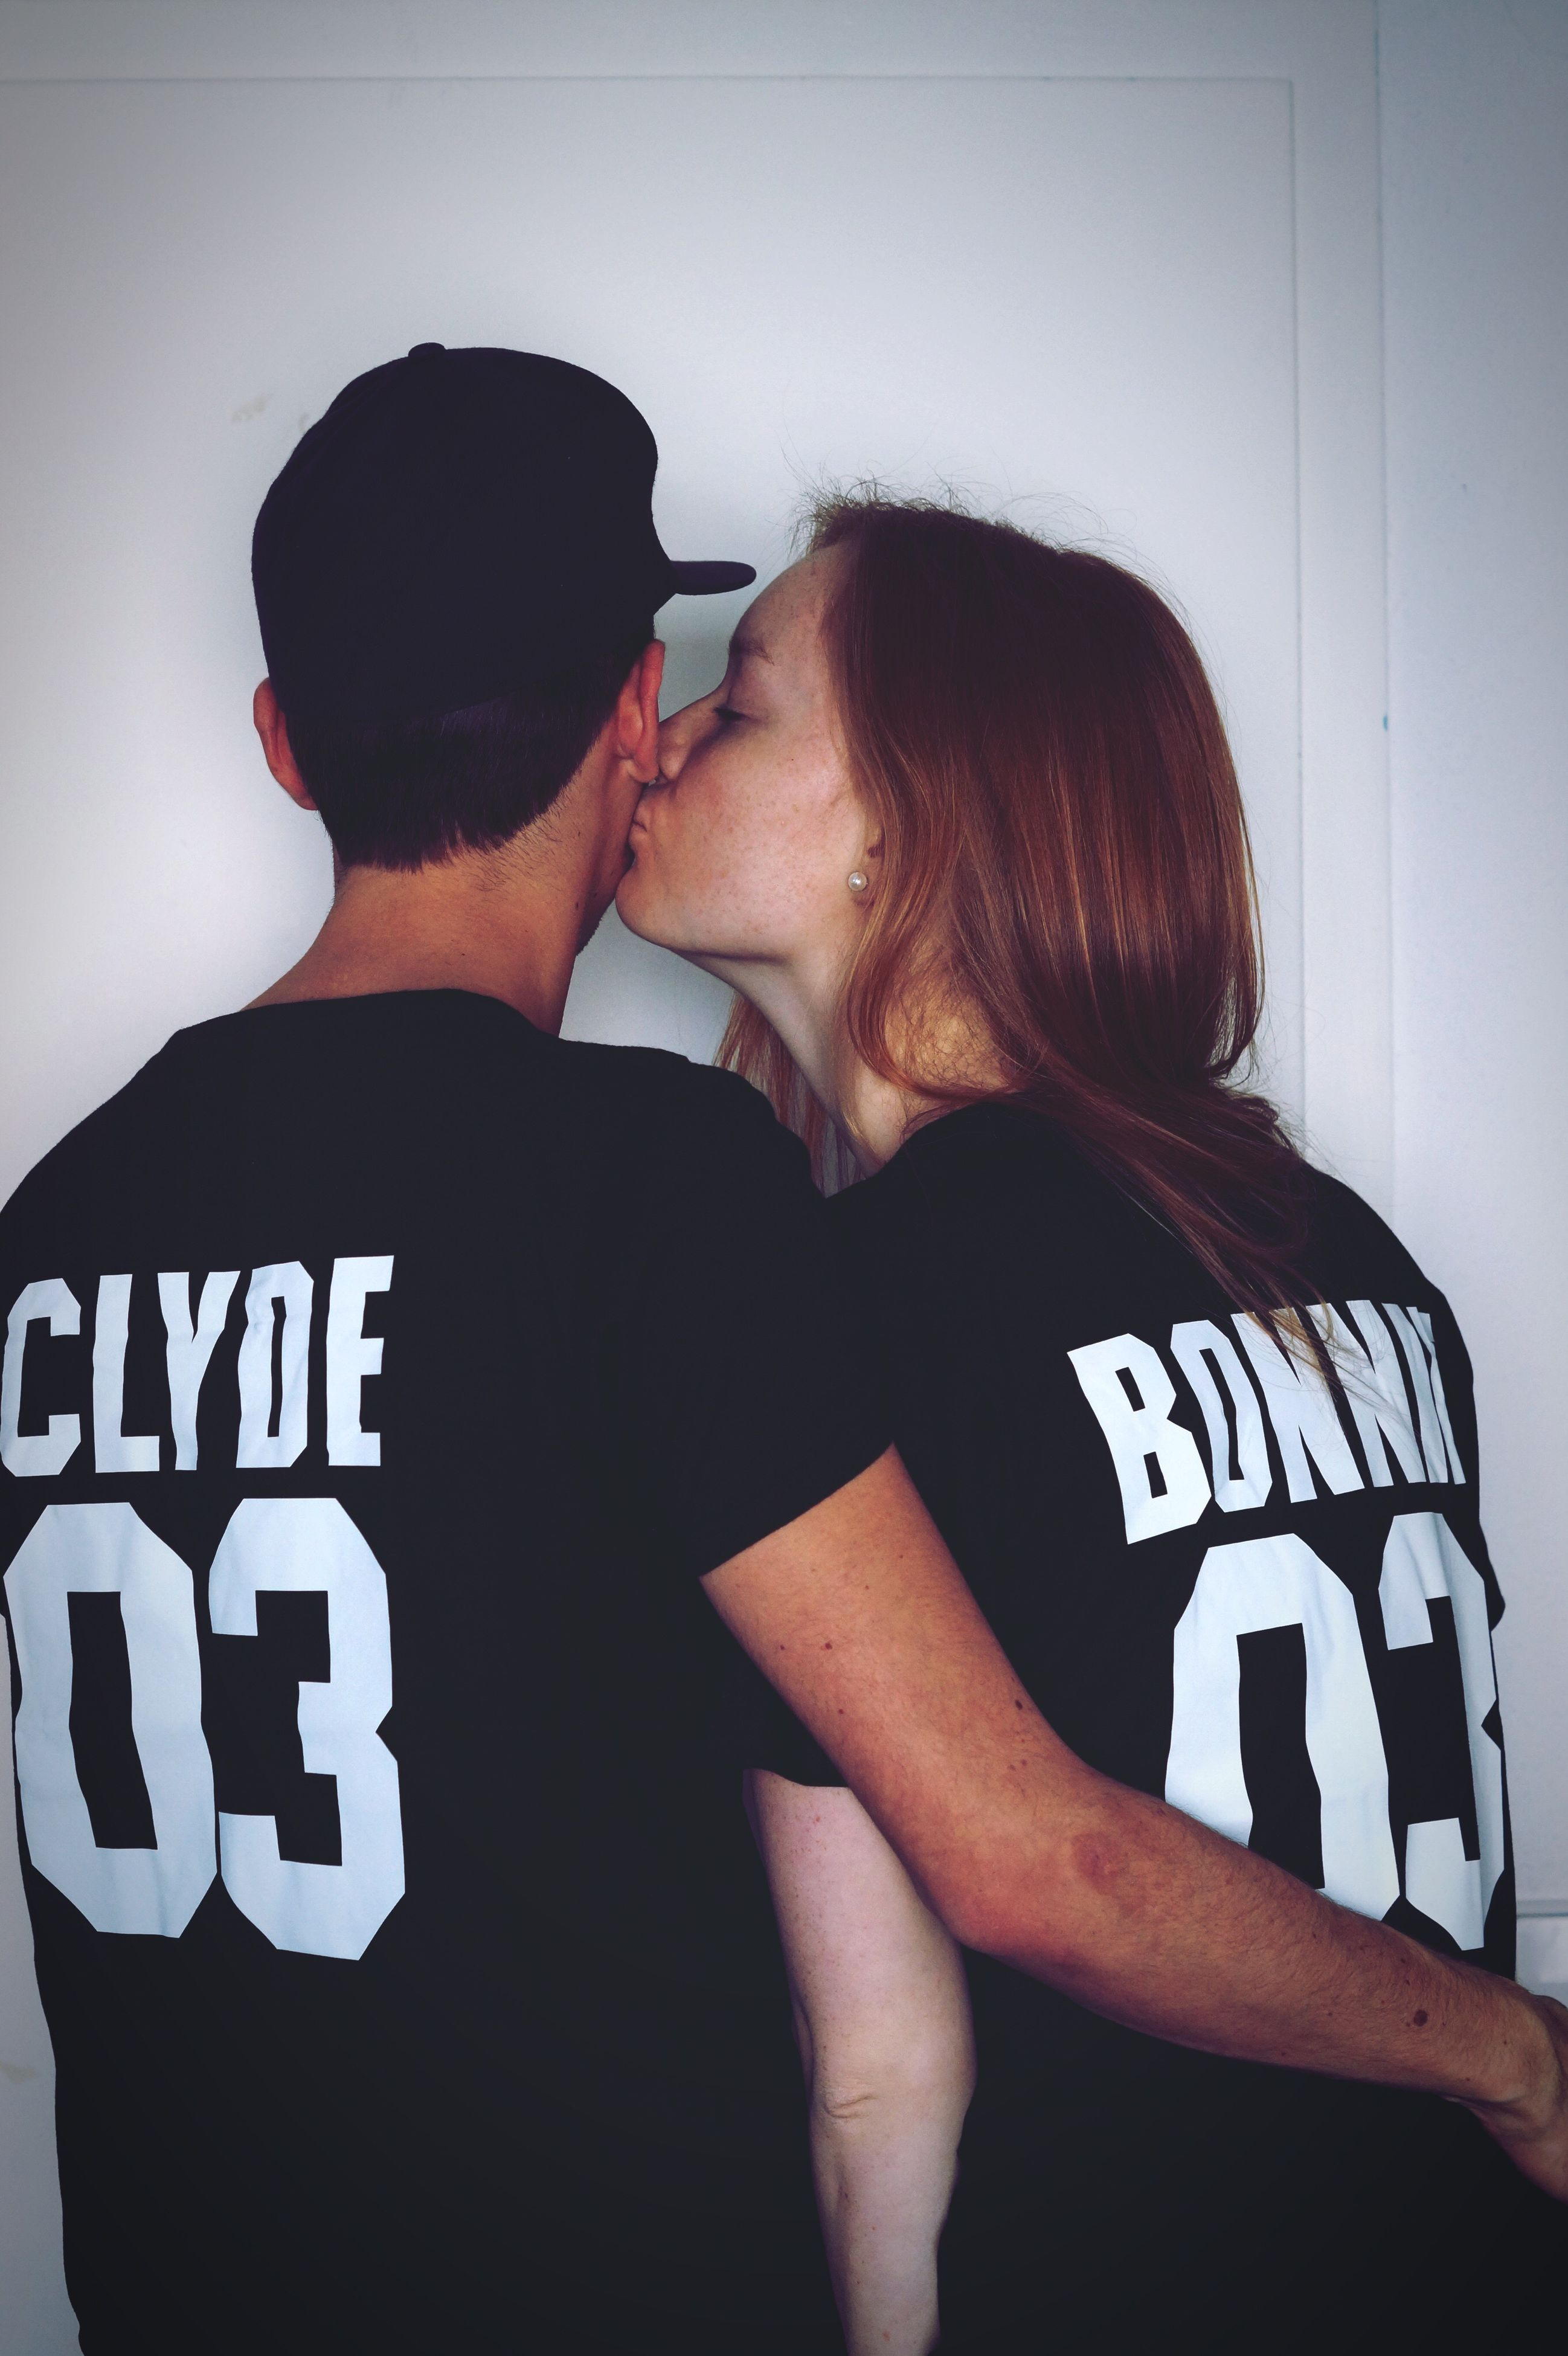 love, two people, kissing, romance, affectionate, heterosexual couple, couple - relationship, young adult, togetherness, young men, adults only, young couple, bonding, embracing, real people, people, men, young women, adult, indoors, day